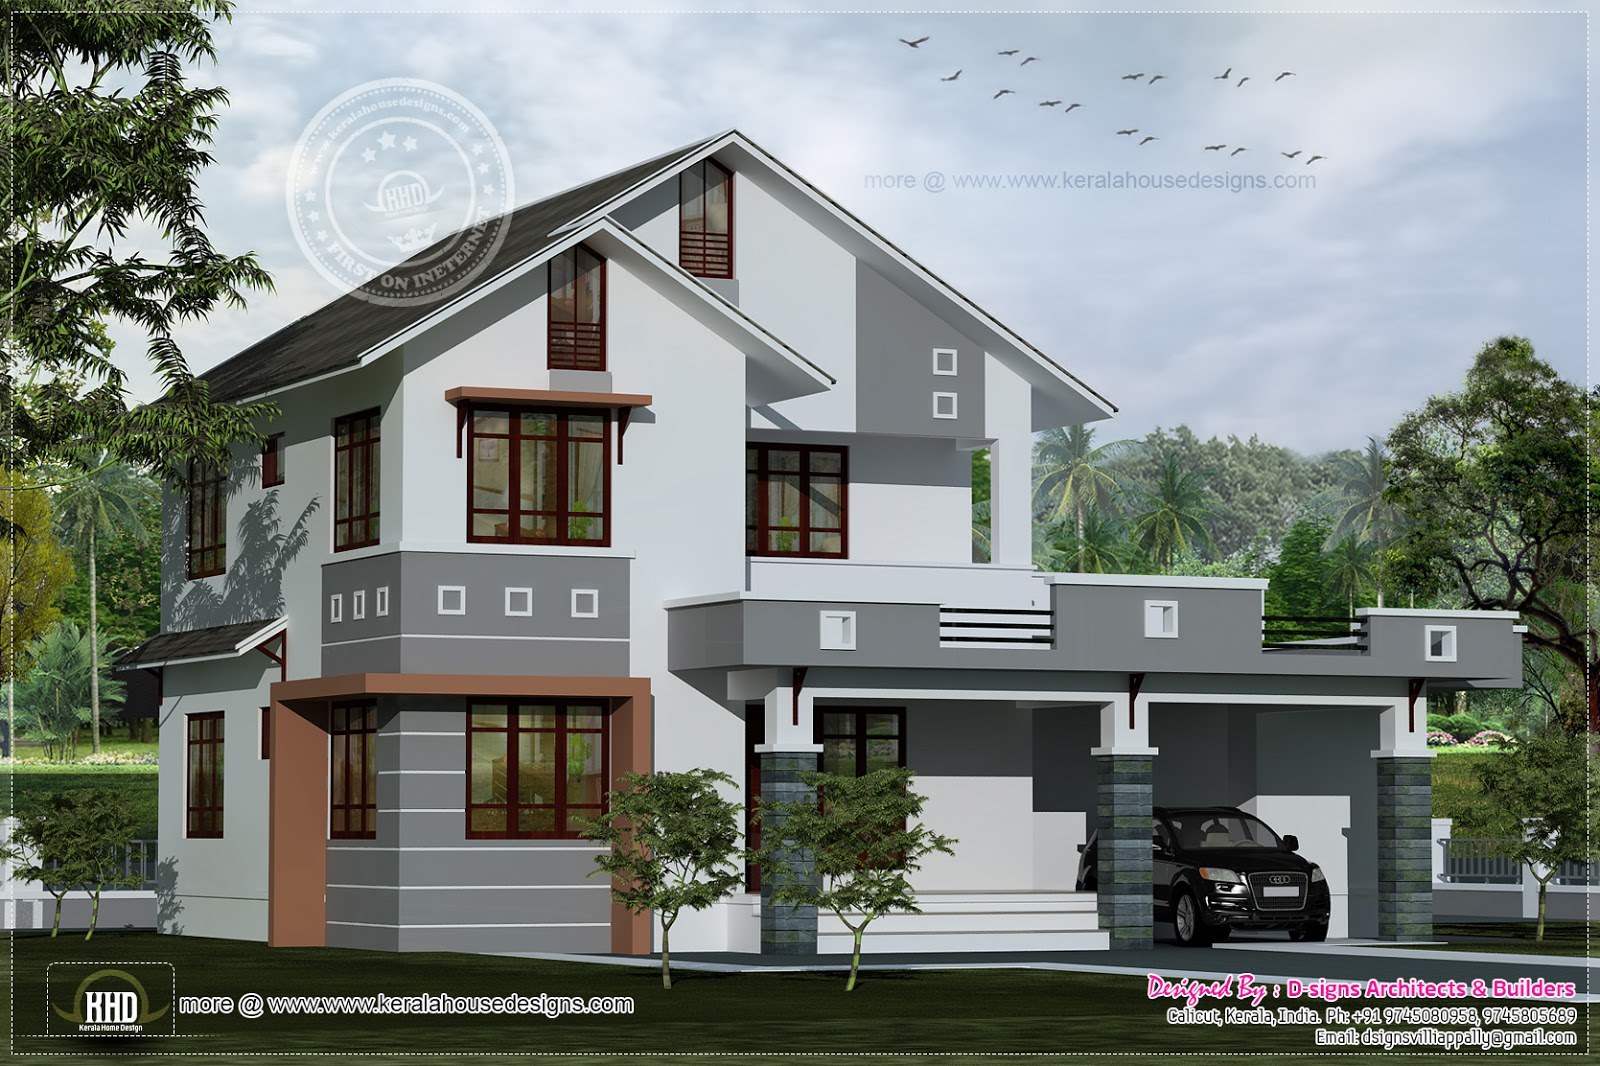 1979 Square Feet Villa Design Kerala Home And